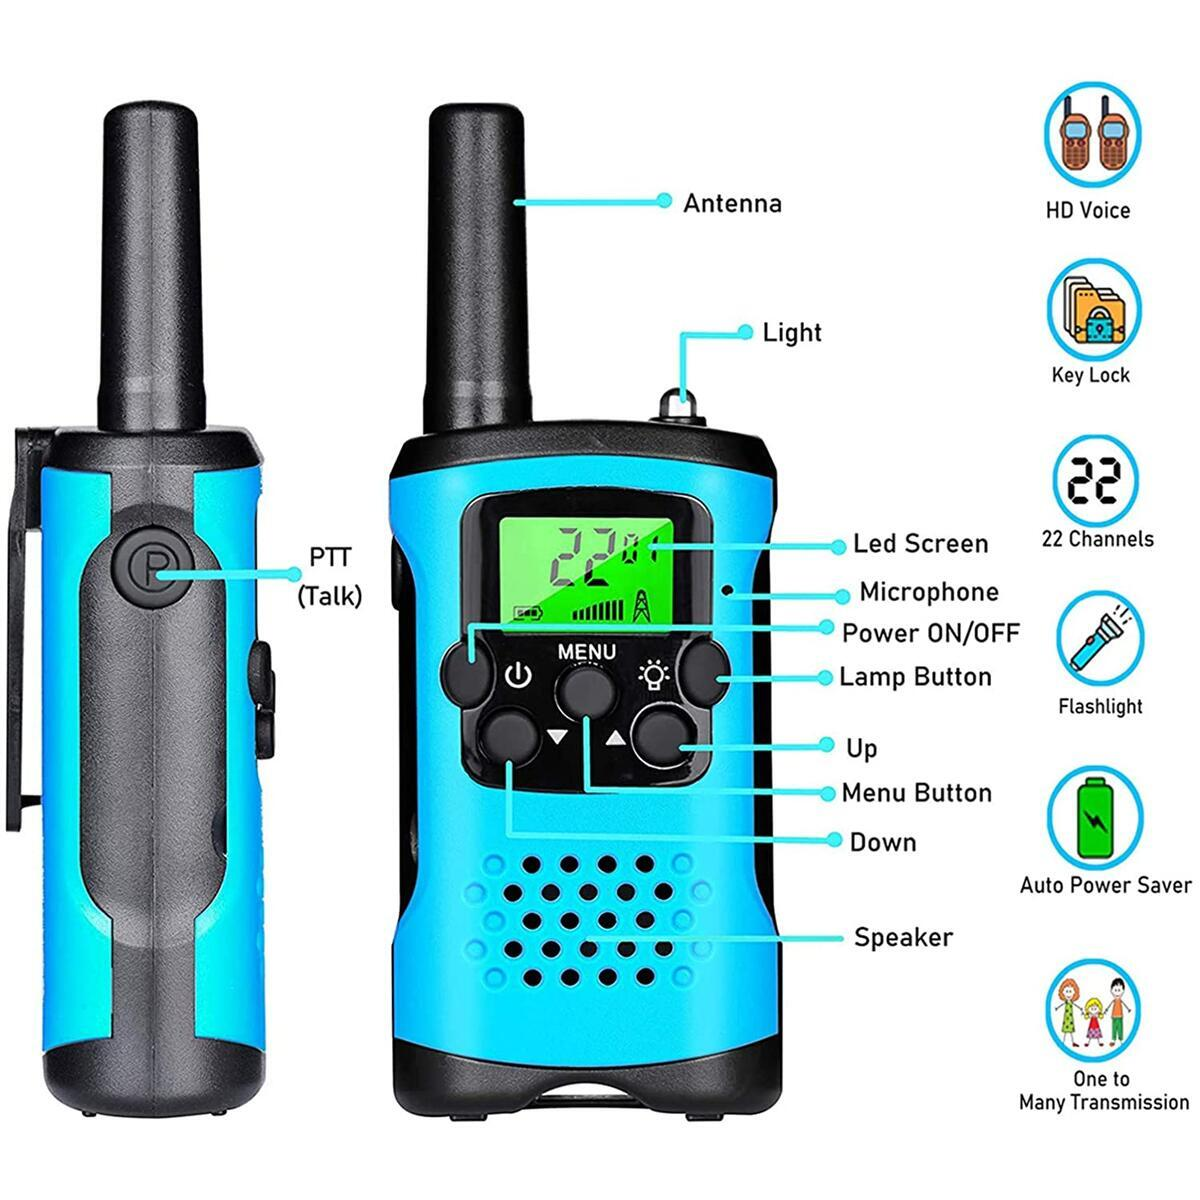 Ahtandy Walkie Talkies for Kids,22 Channel Kids Walkie Talkies Toys, Prevent Children's Myopia and Away from Electronic Games,Gifts for Kids Adventure Gear to Camping, Games, Hiking(Blue, 2 Pack)